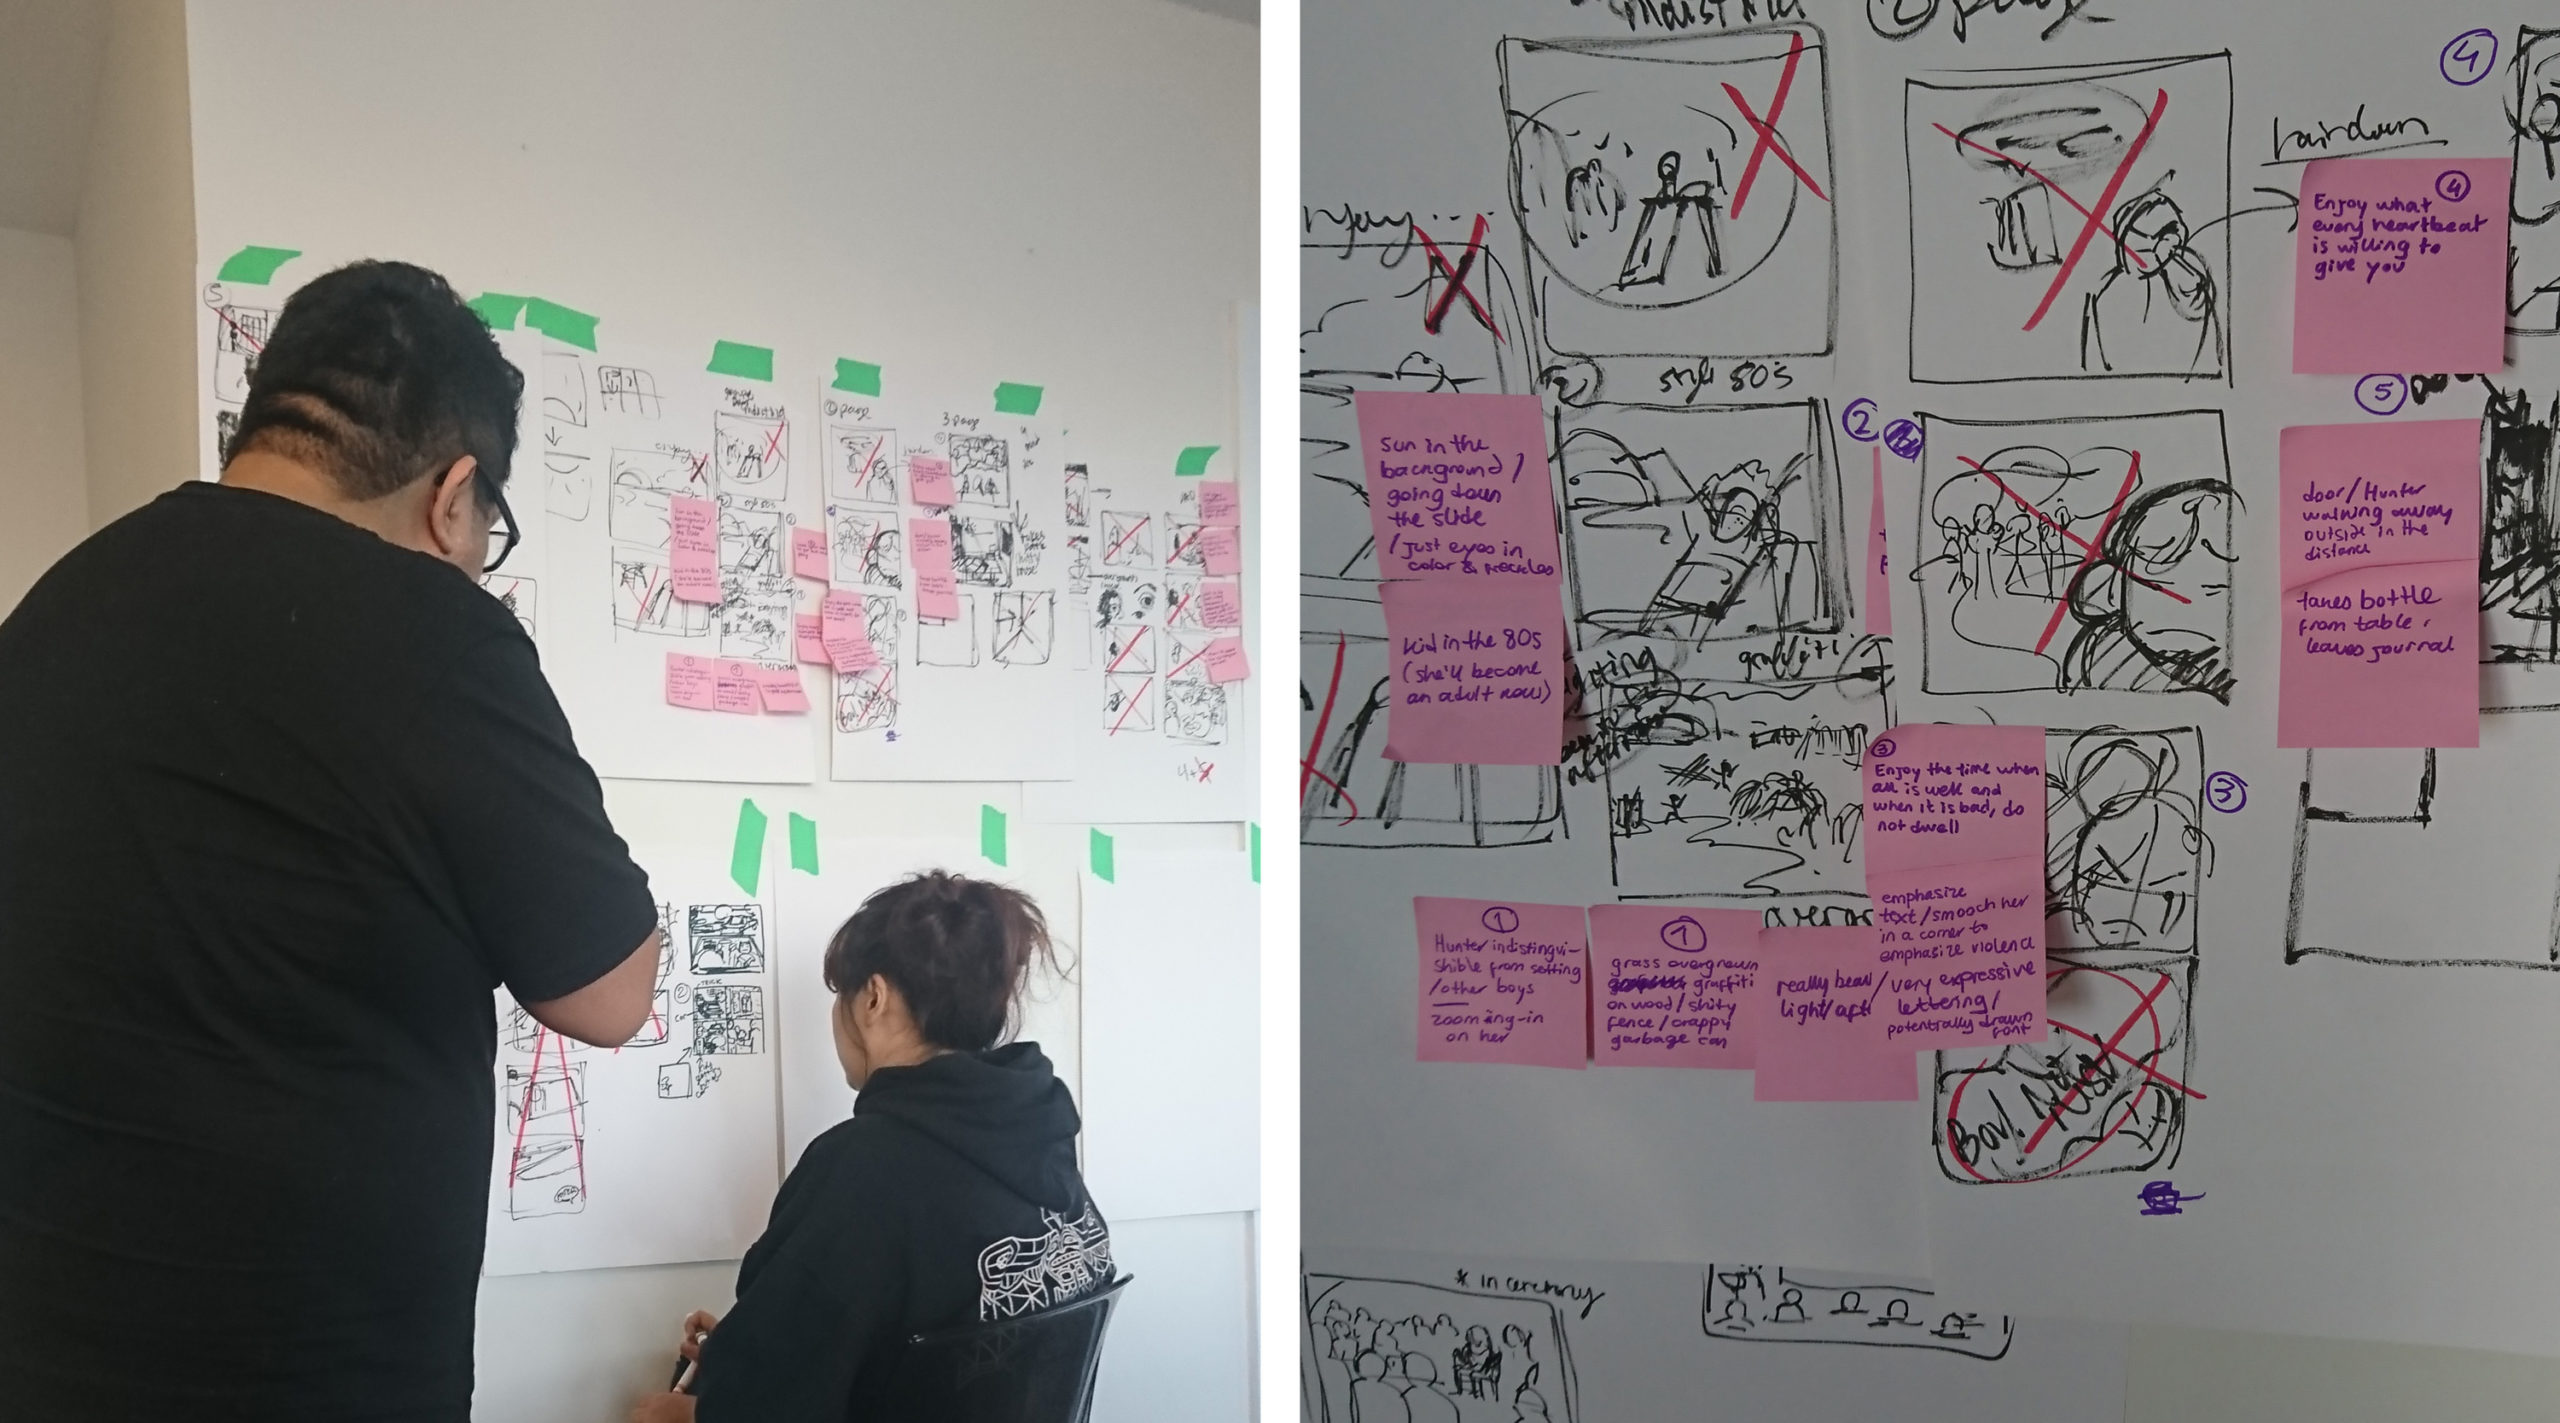 (Left): Photo of two young artists working on graphic novel storyboards taped to a wall. Both artists are wearing black and face away from the camera, attentively staring at the storyboards. (Right): Close-up photo of a graphic novel storyboard. Visible on the image are several hand-drawn frames, with various characters and settings inside of them. Some of the frames are crossed with a red 'x,' to indicate they are to be discarded. Some have post-its with comments on them.